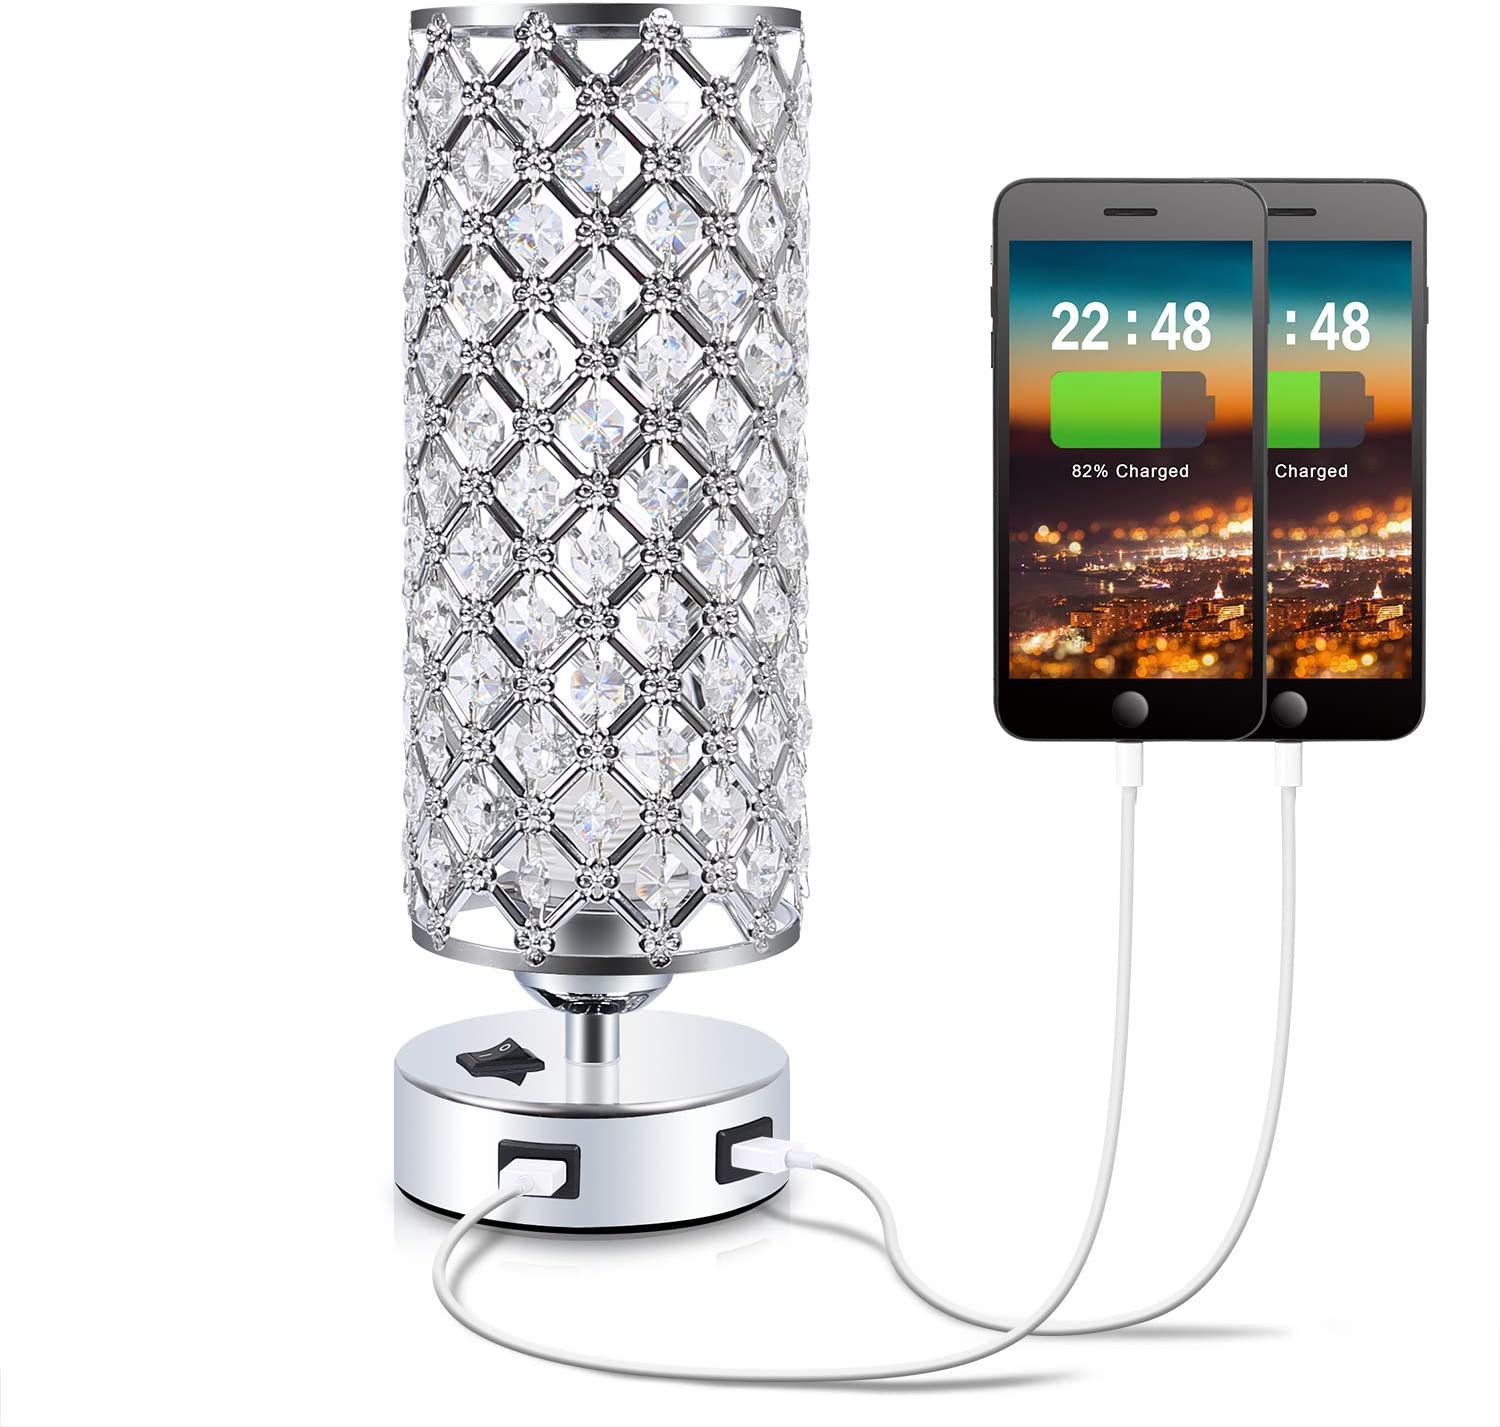 USB Crystal Table Lamp,Kakanuo Bedside Table Desk Lamp with Dual USB Charging Port,Modern Nightstand Lamp for Bedroom,Living Room,Office